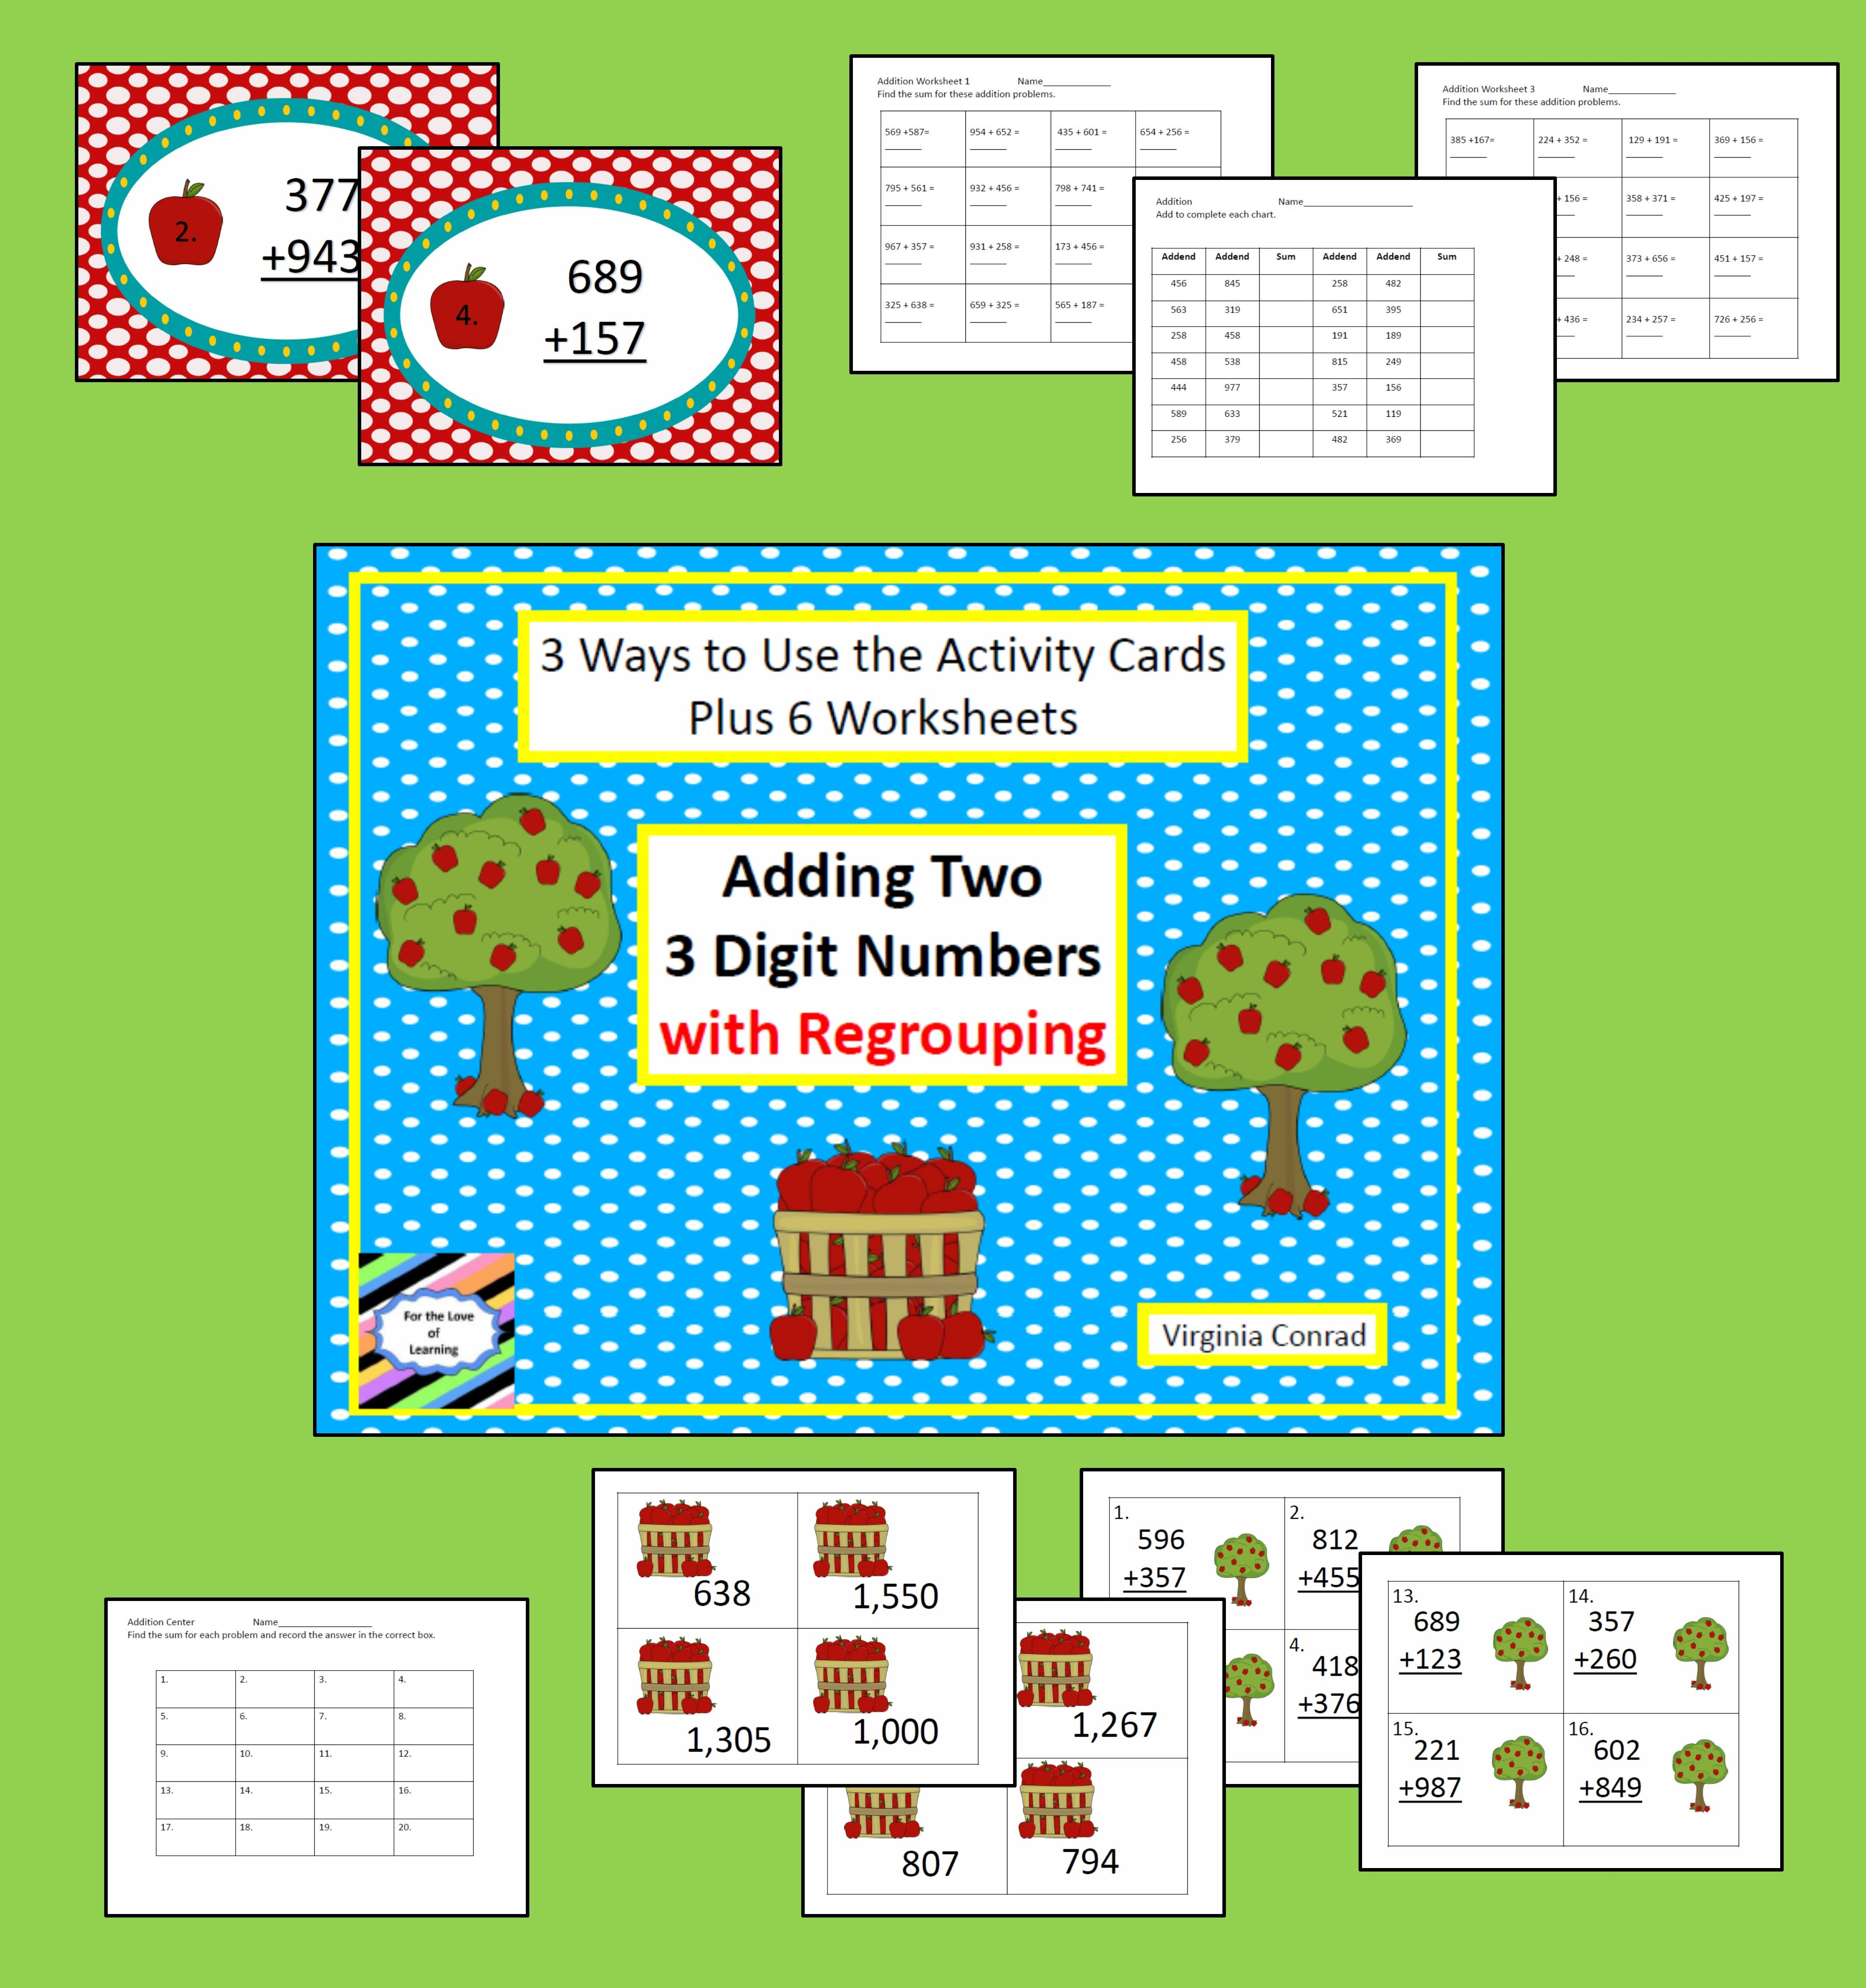 Adding 2 Three Digit Numbers With Regrouping Apple Theme